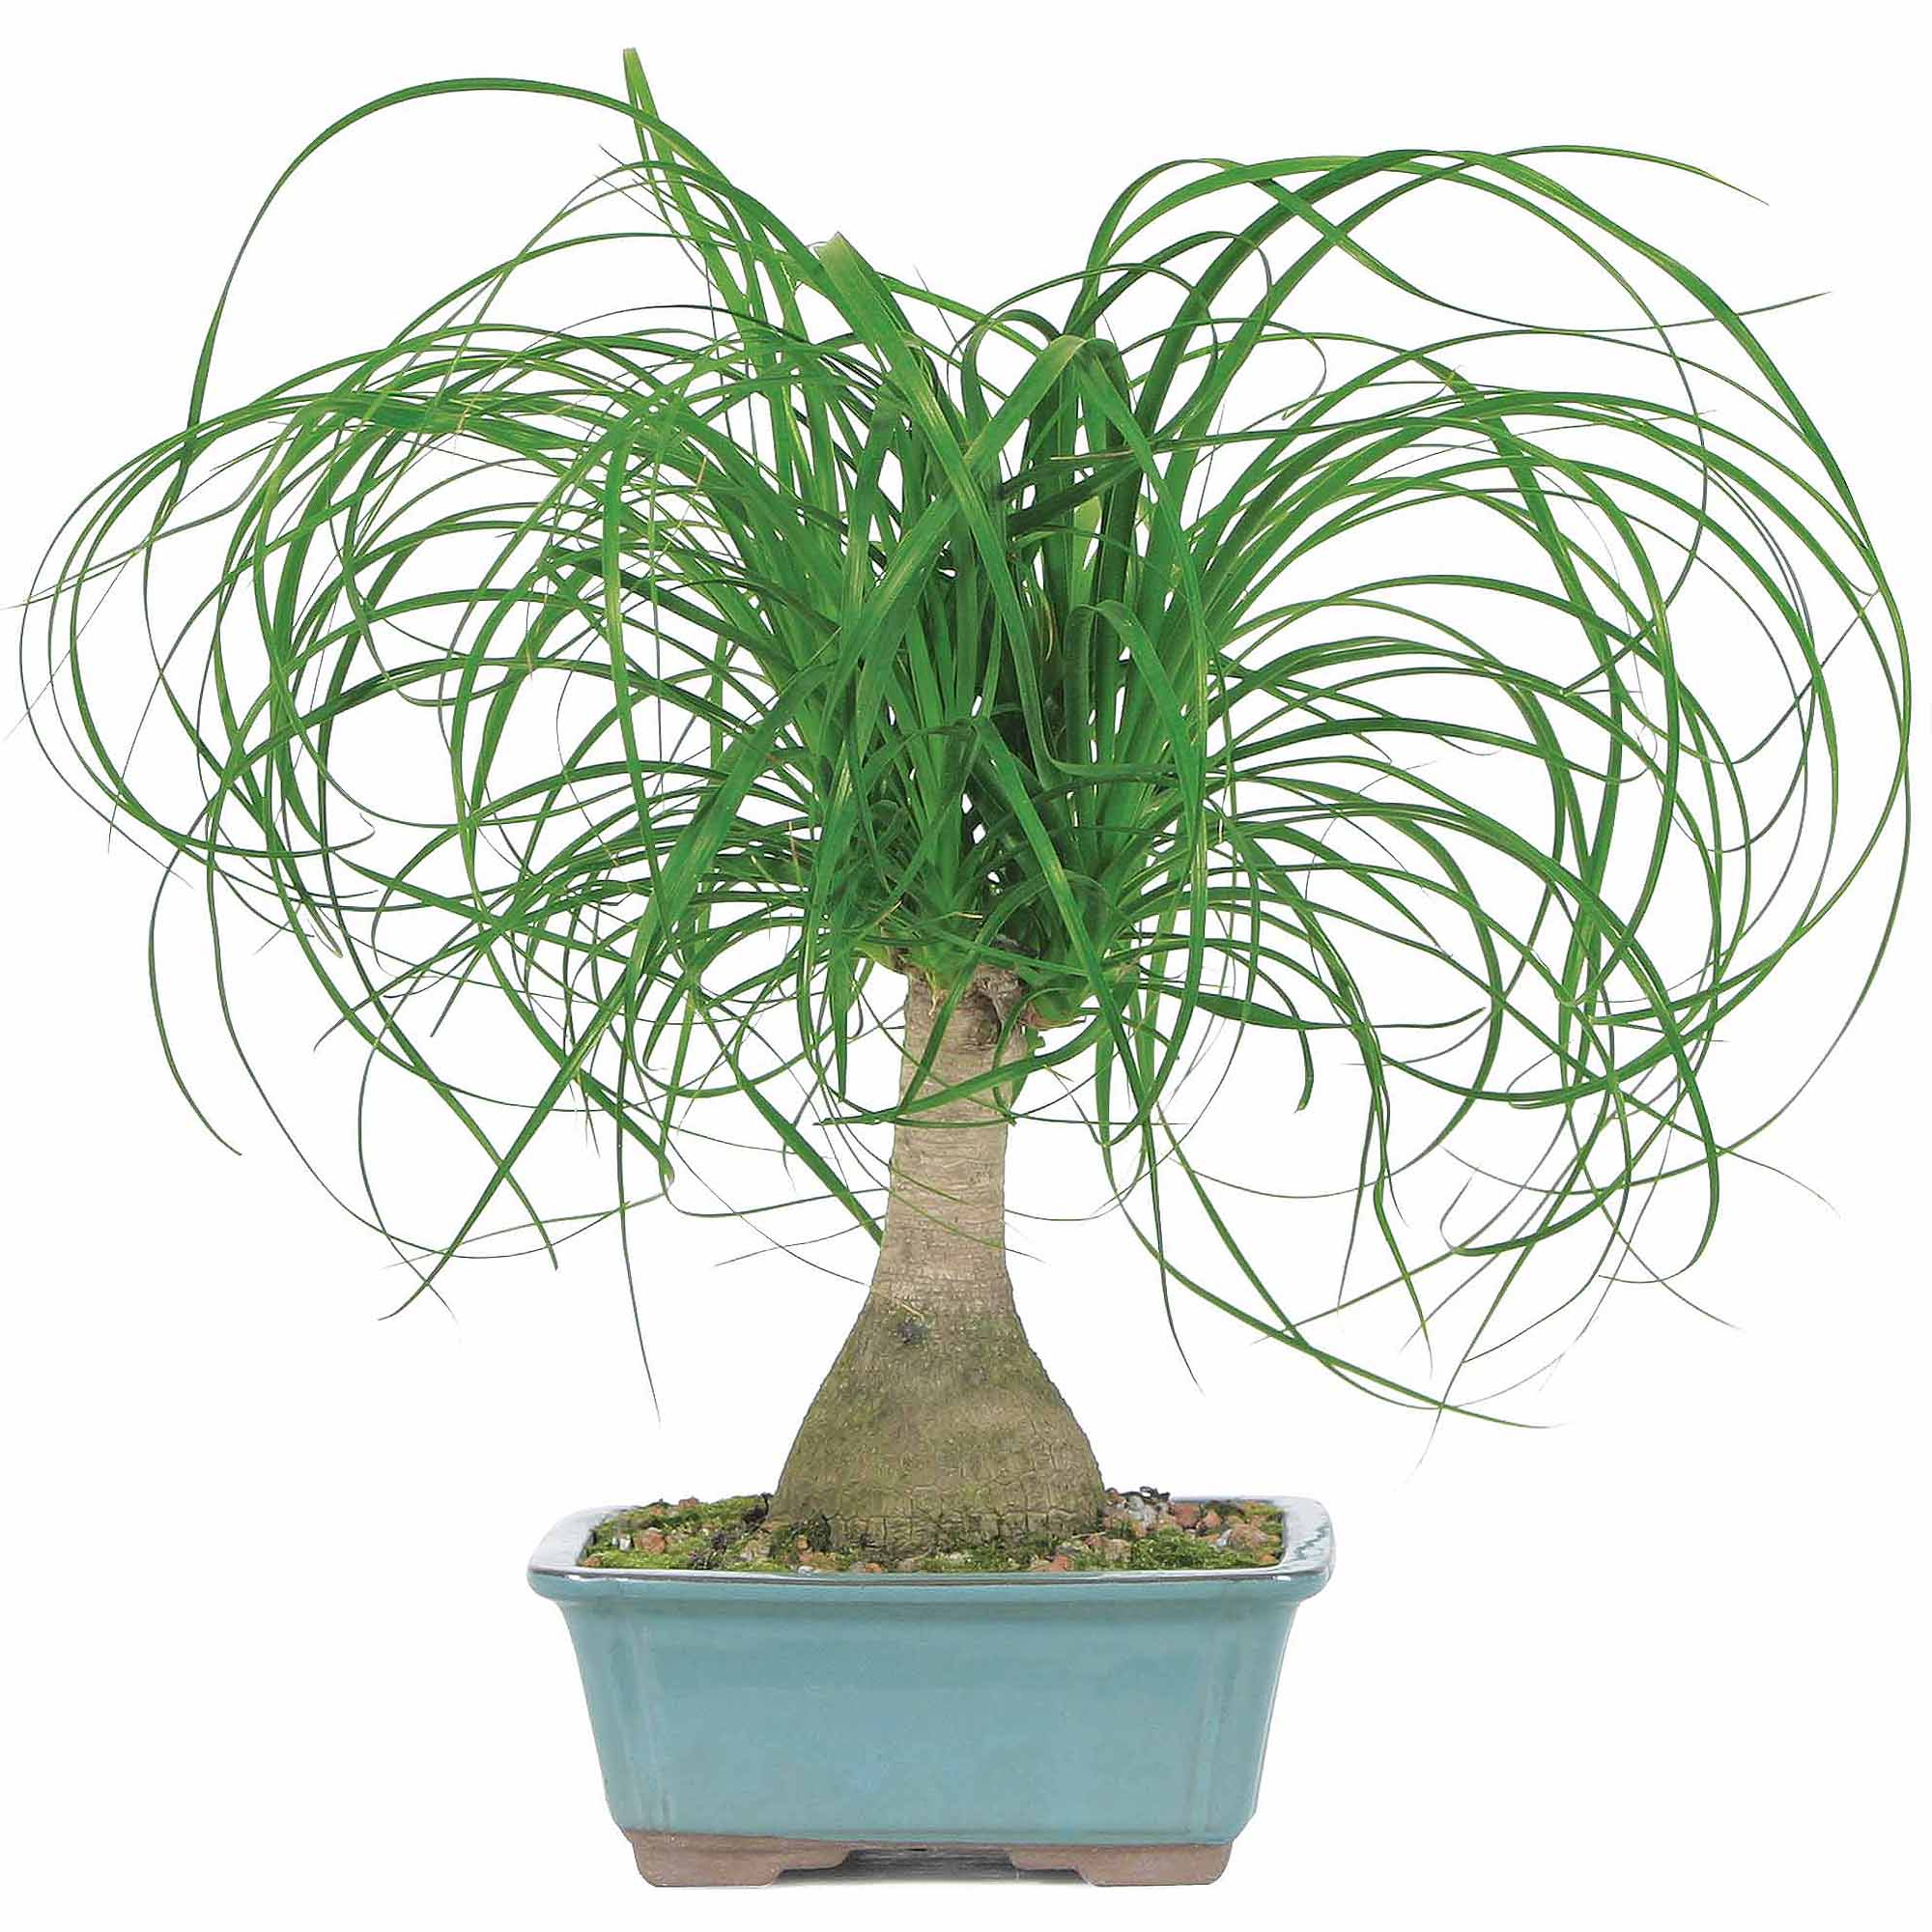 Ponytail - Ponytail should be a few feet away from a window. They like six hour so sunlight a day and should be rotated every few months. Ponytail Palms do not need to be watered often- once every couple of weeks. * Information taken from Joy Us Garden *